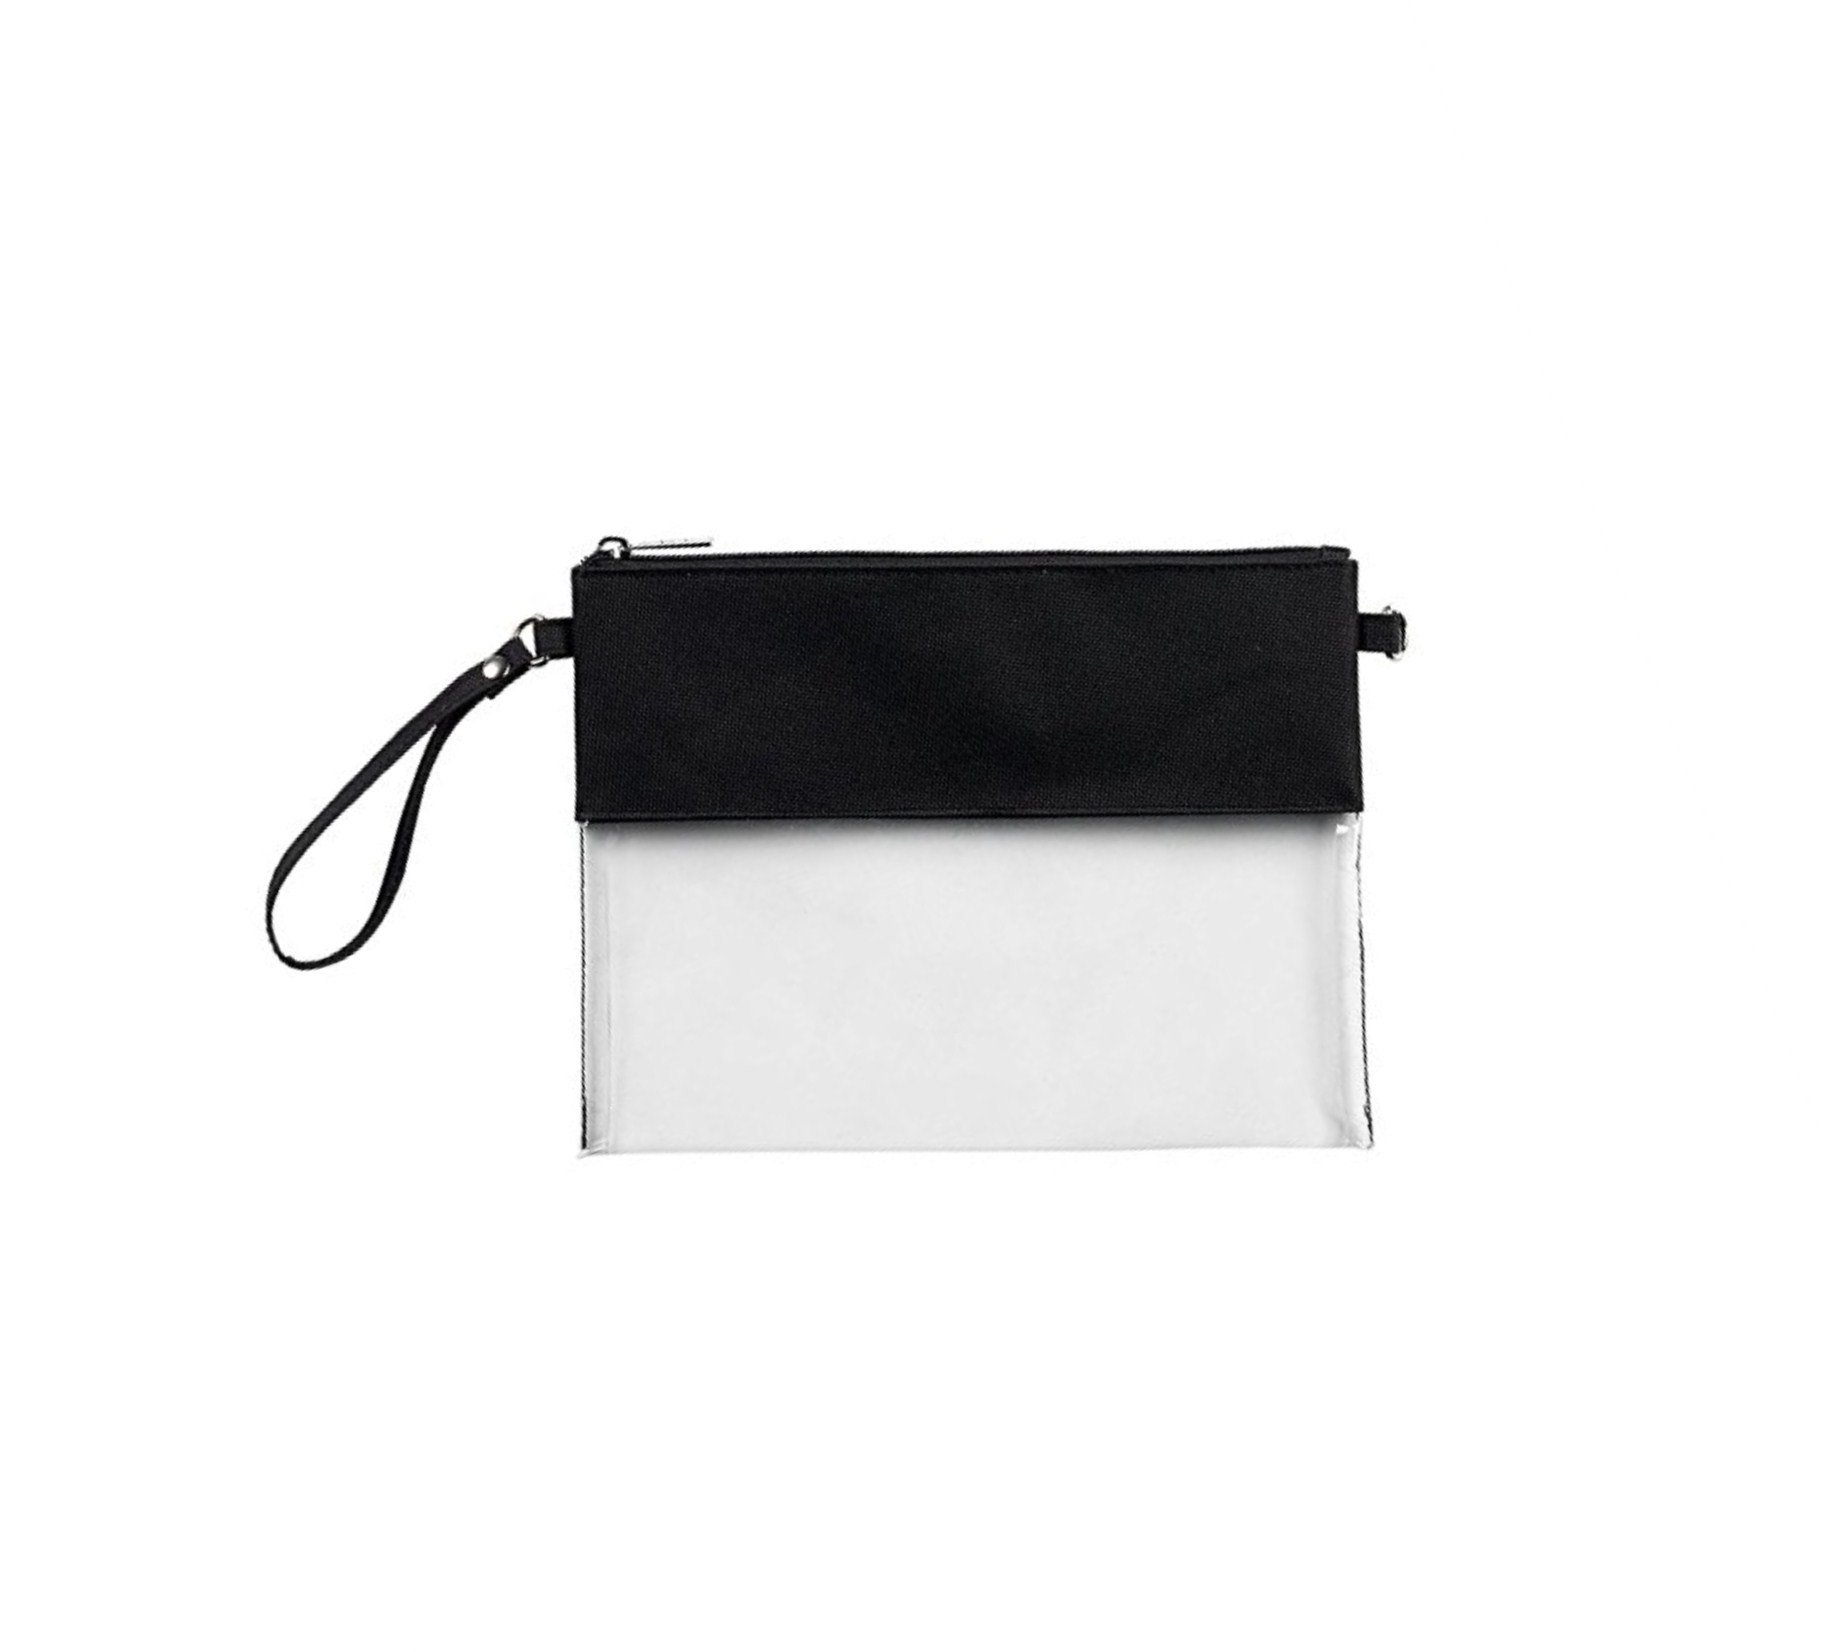 MONOBLANKS Clear Zip Pouch with Detachable Crossbody Adjustable Strap and Wristlet (Black)